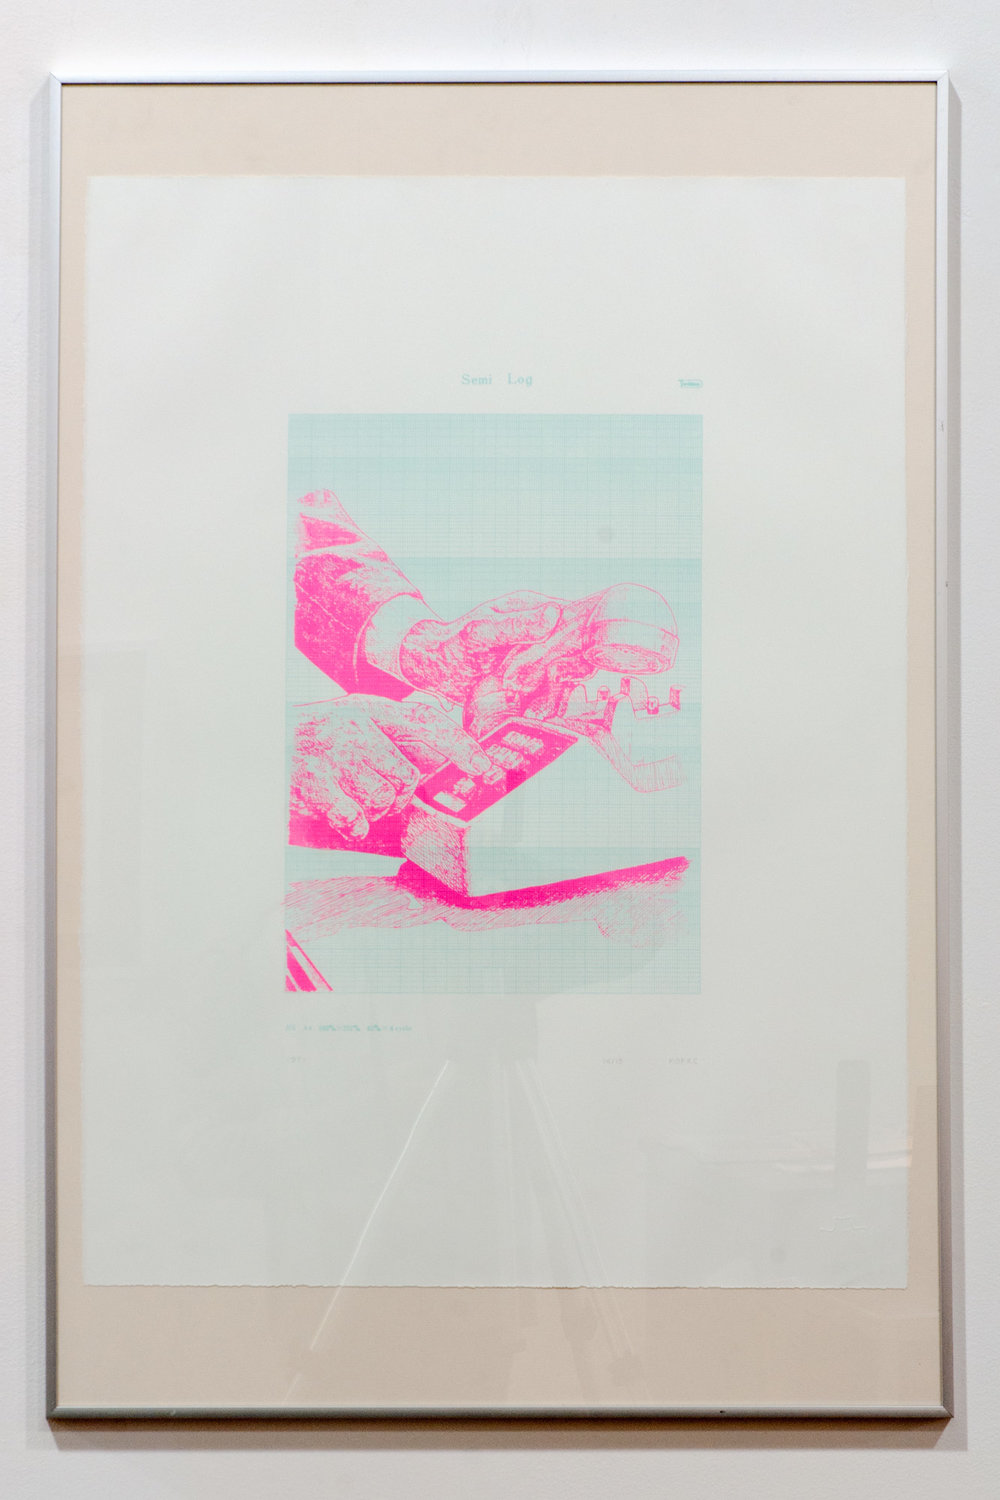 1971 screenprint on paper 35 x 25 inches JKO 095G